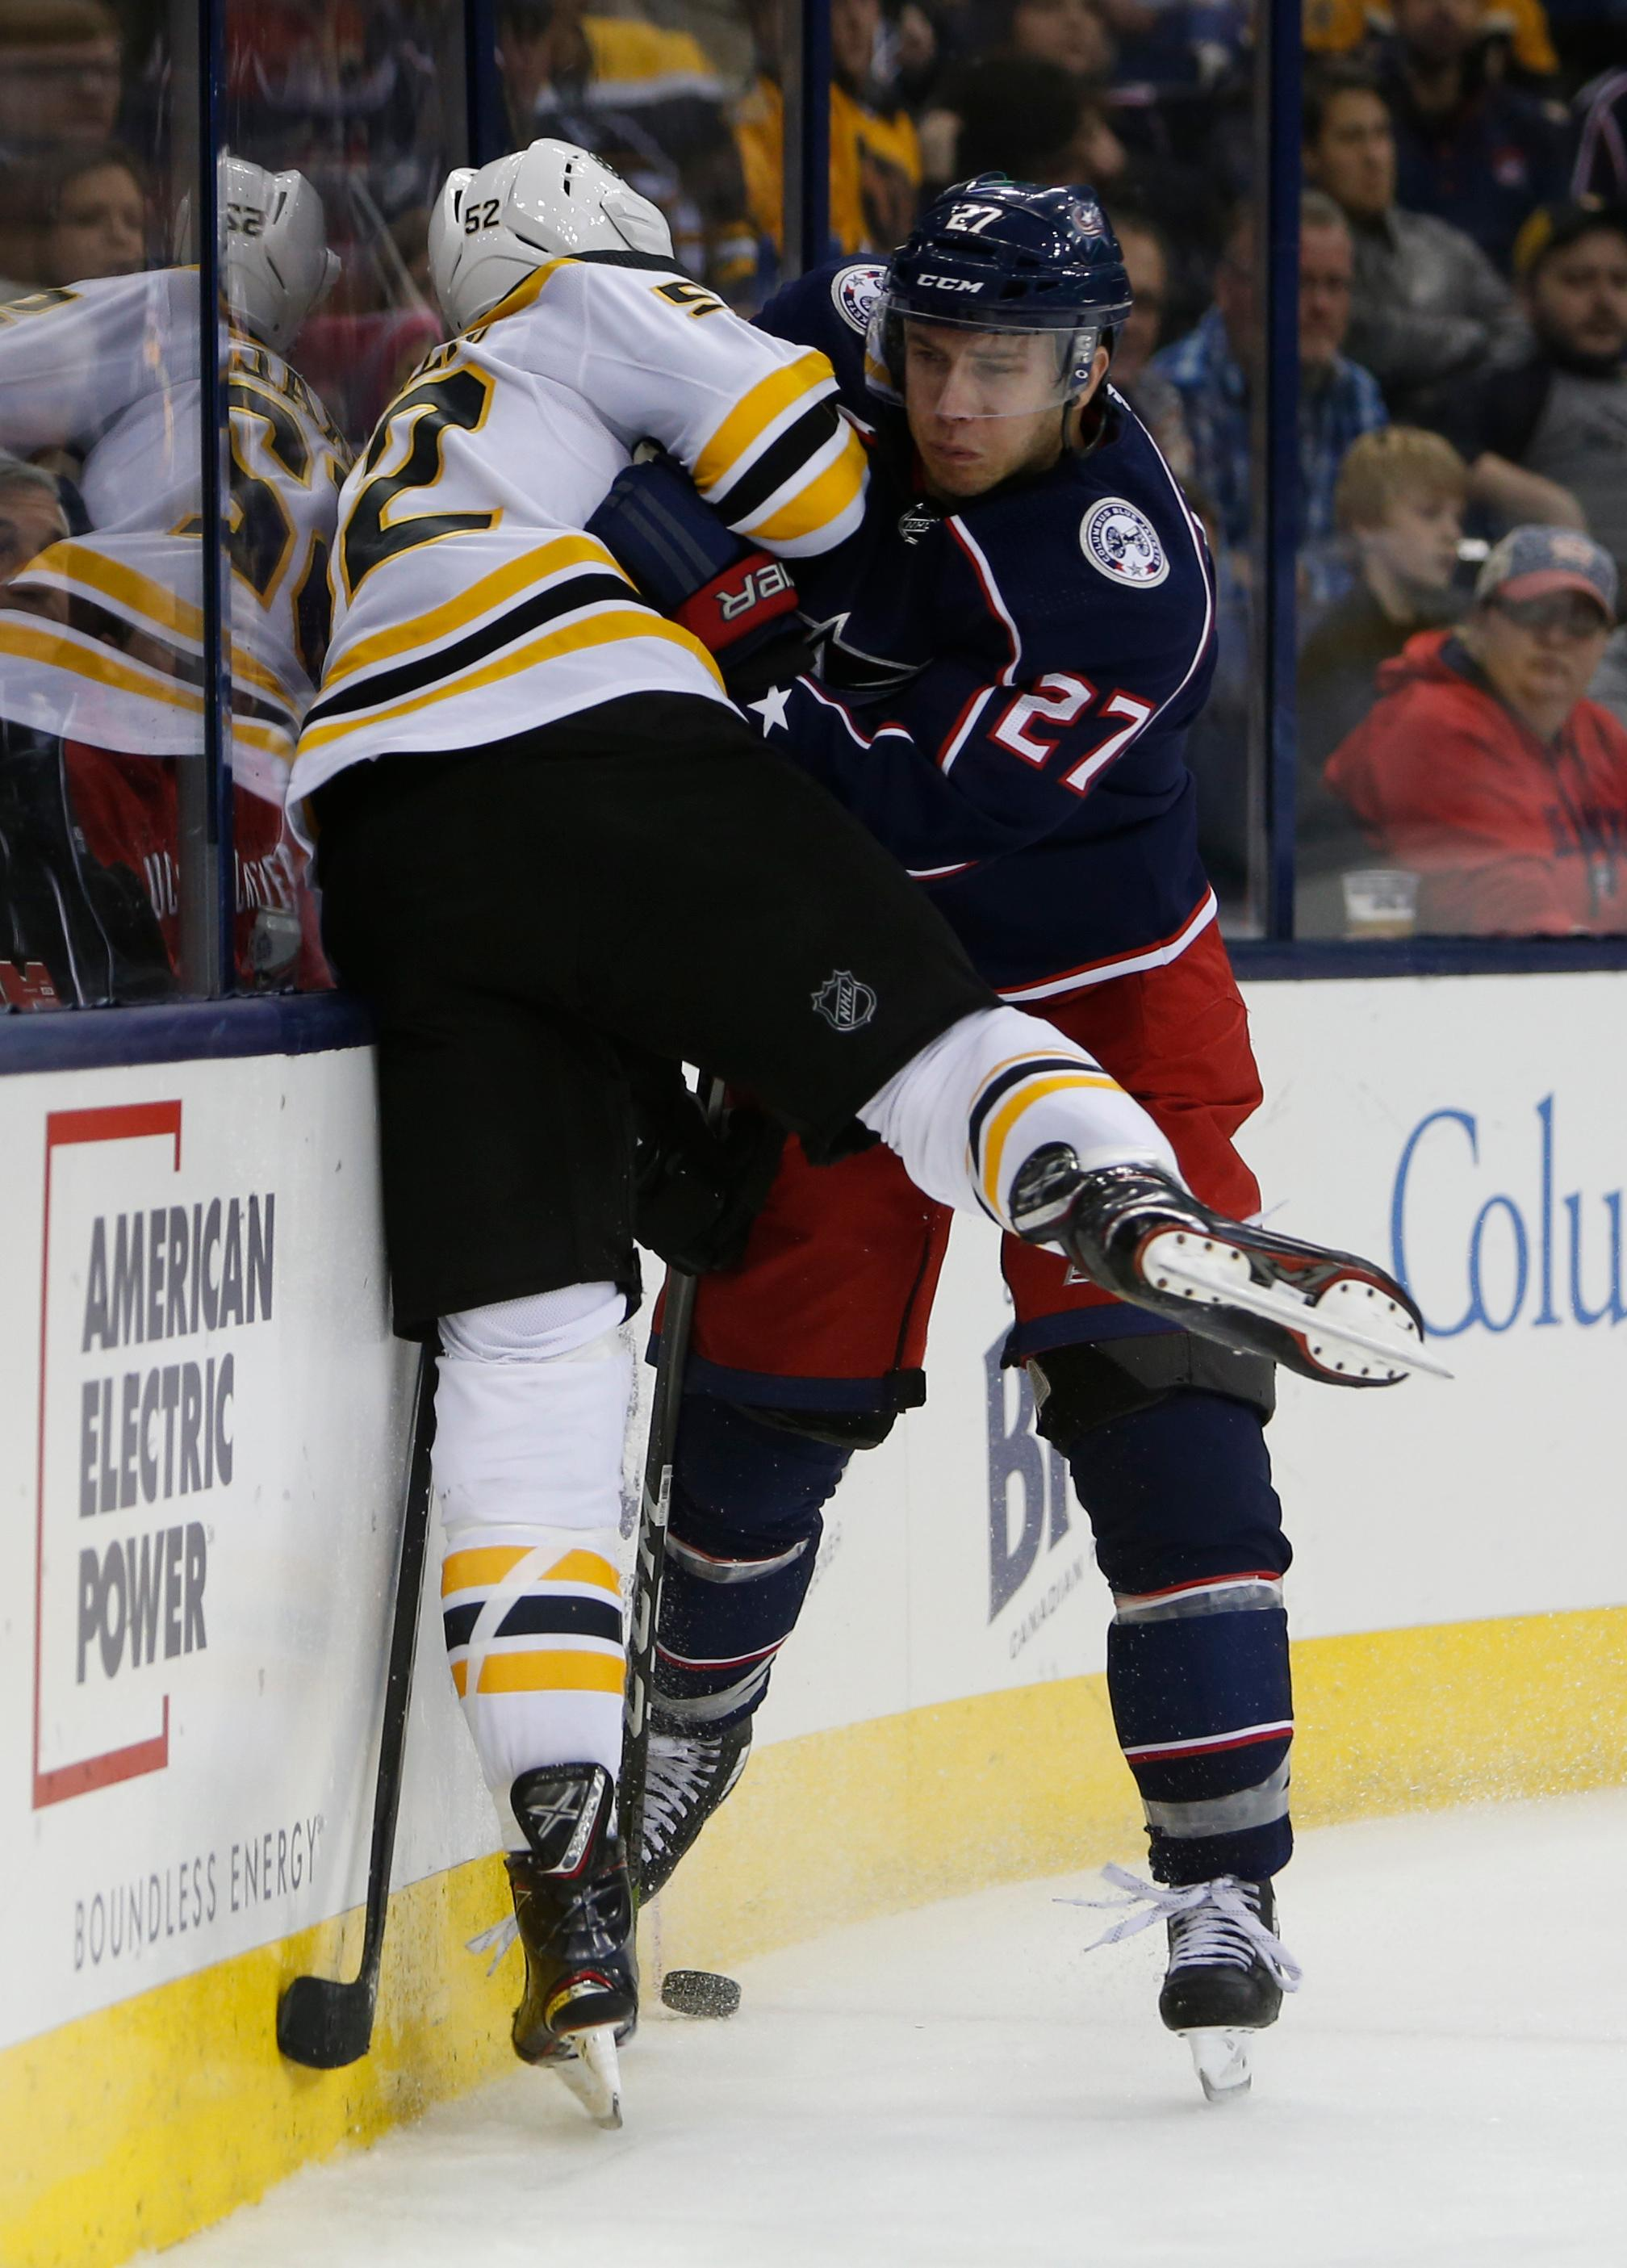 Columbus Blue Jackets' Ryan Murray, right, checks Boston Bruins' Sean Kuraly during the third period of an NHL hockey game Monday, Oct. 30, 2017, in Columbus, Ohio. The Blue Jackets beat the Bruins 4-3 in a shootout. (AP Photo/Jay LaPrete)